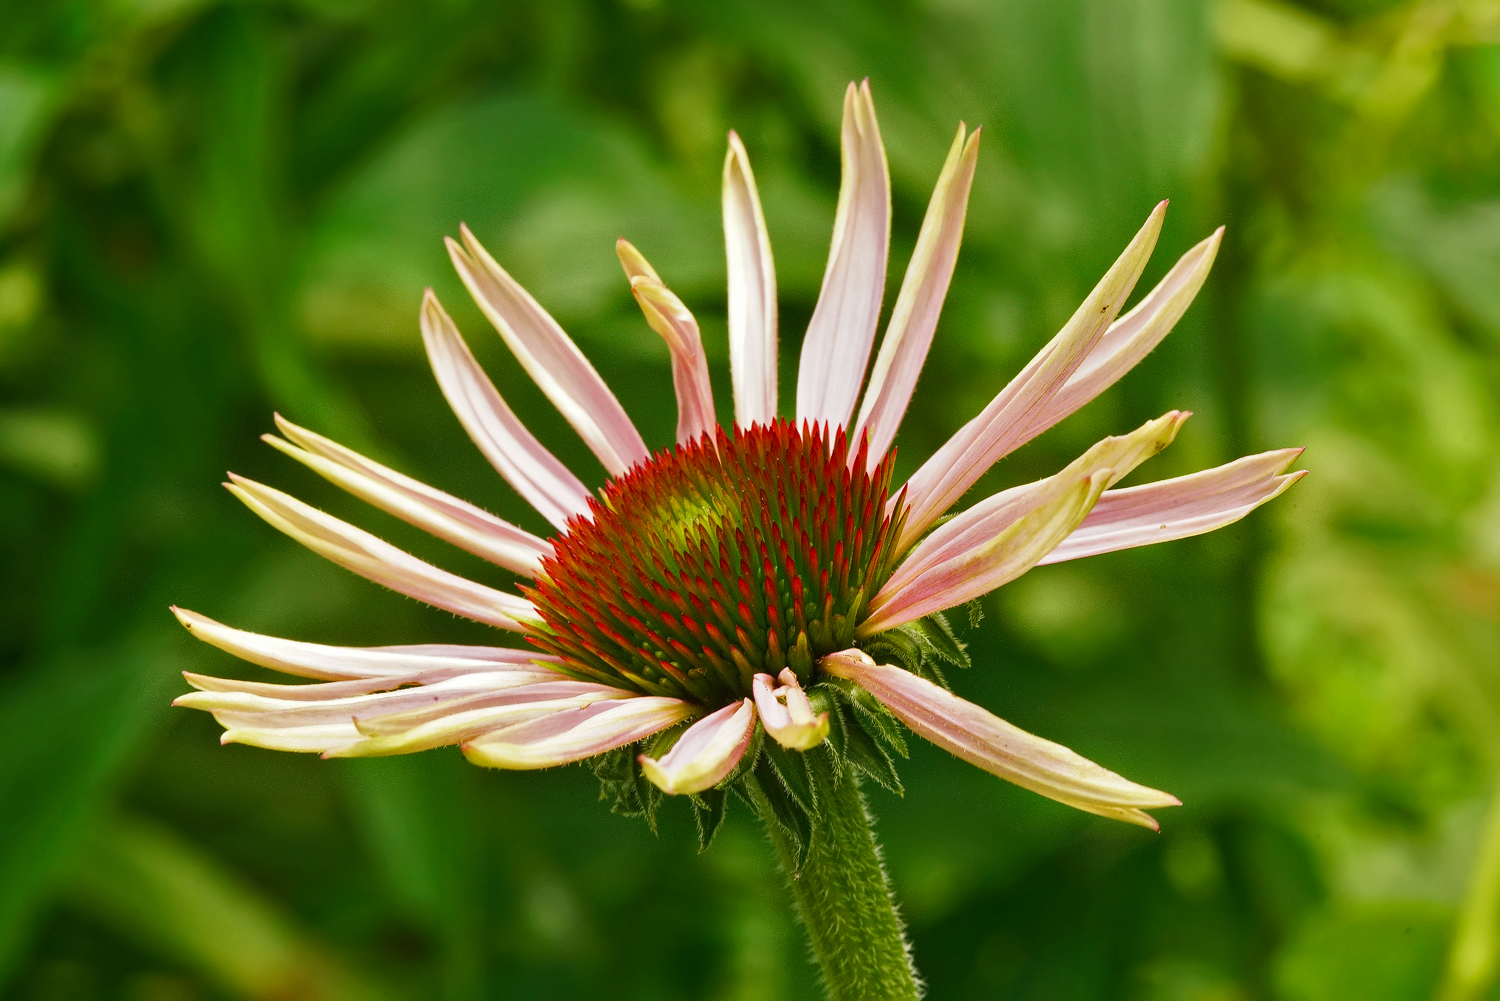 adolescent echinacea dsc aw author sava gregory a and verena